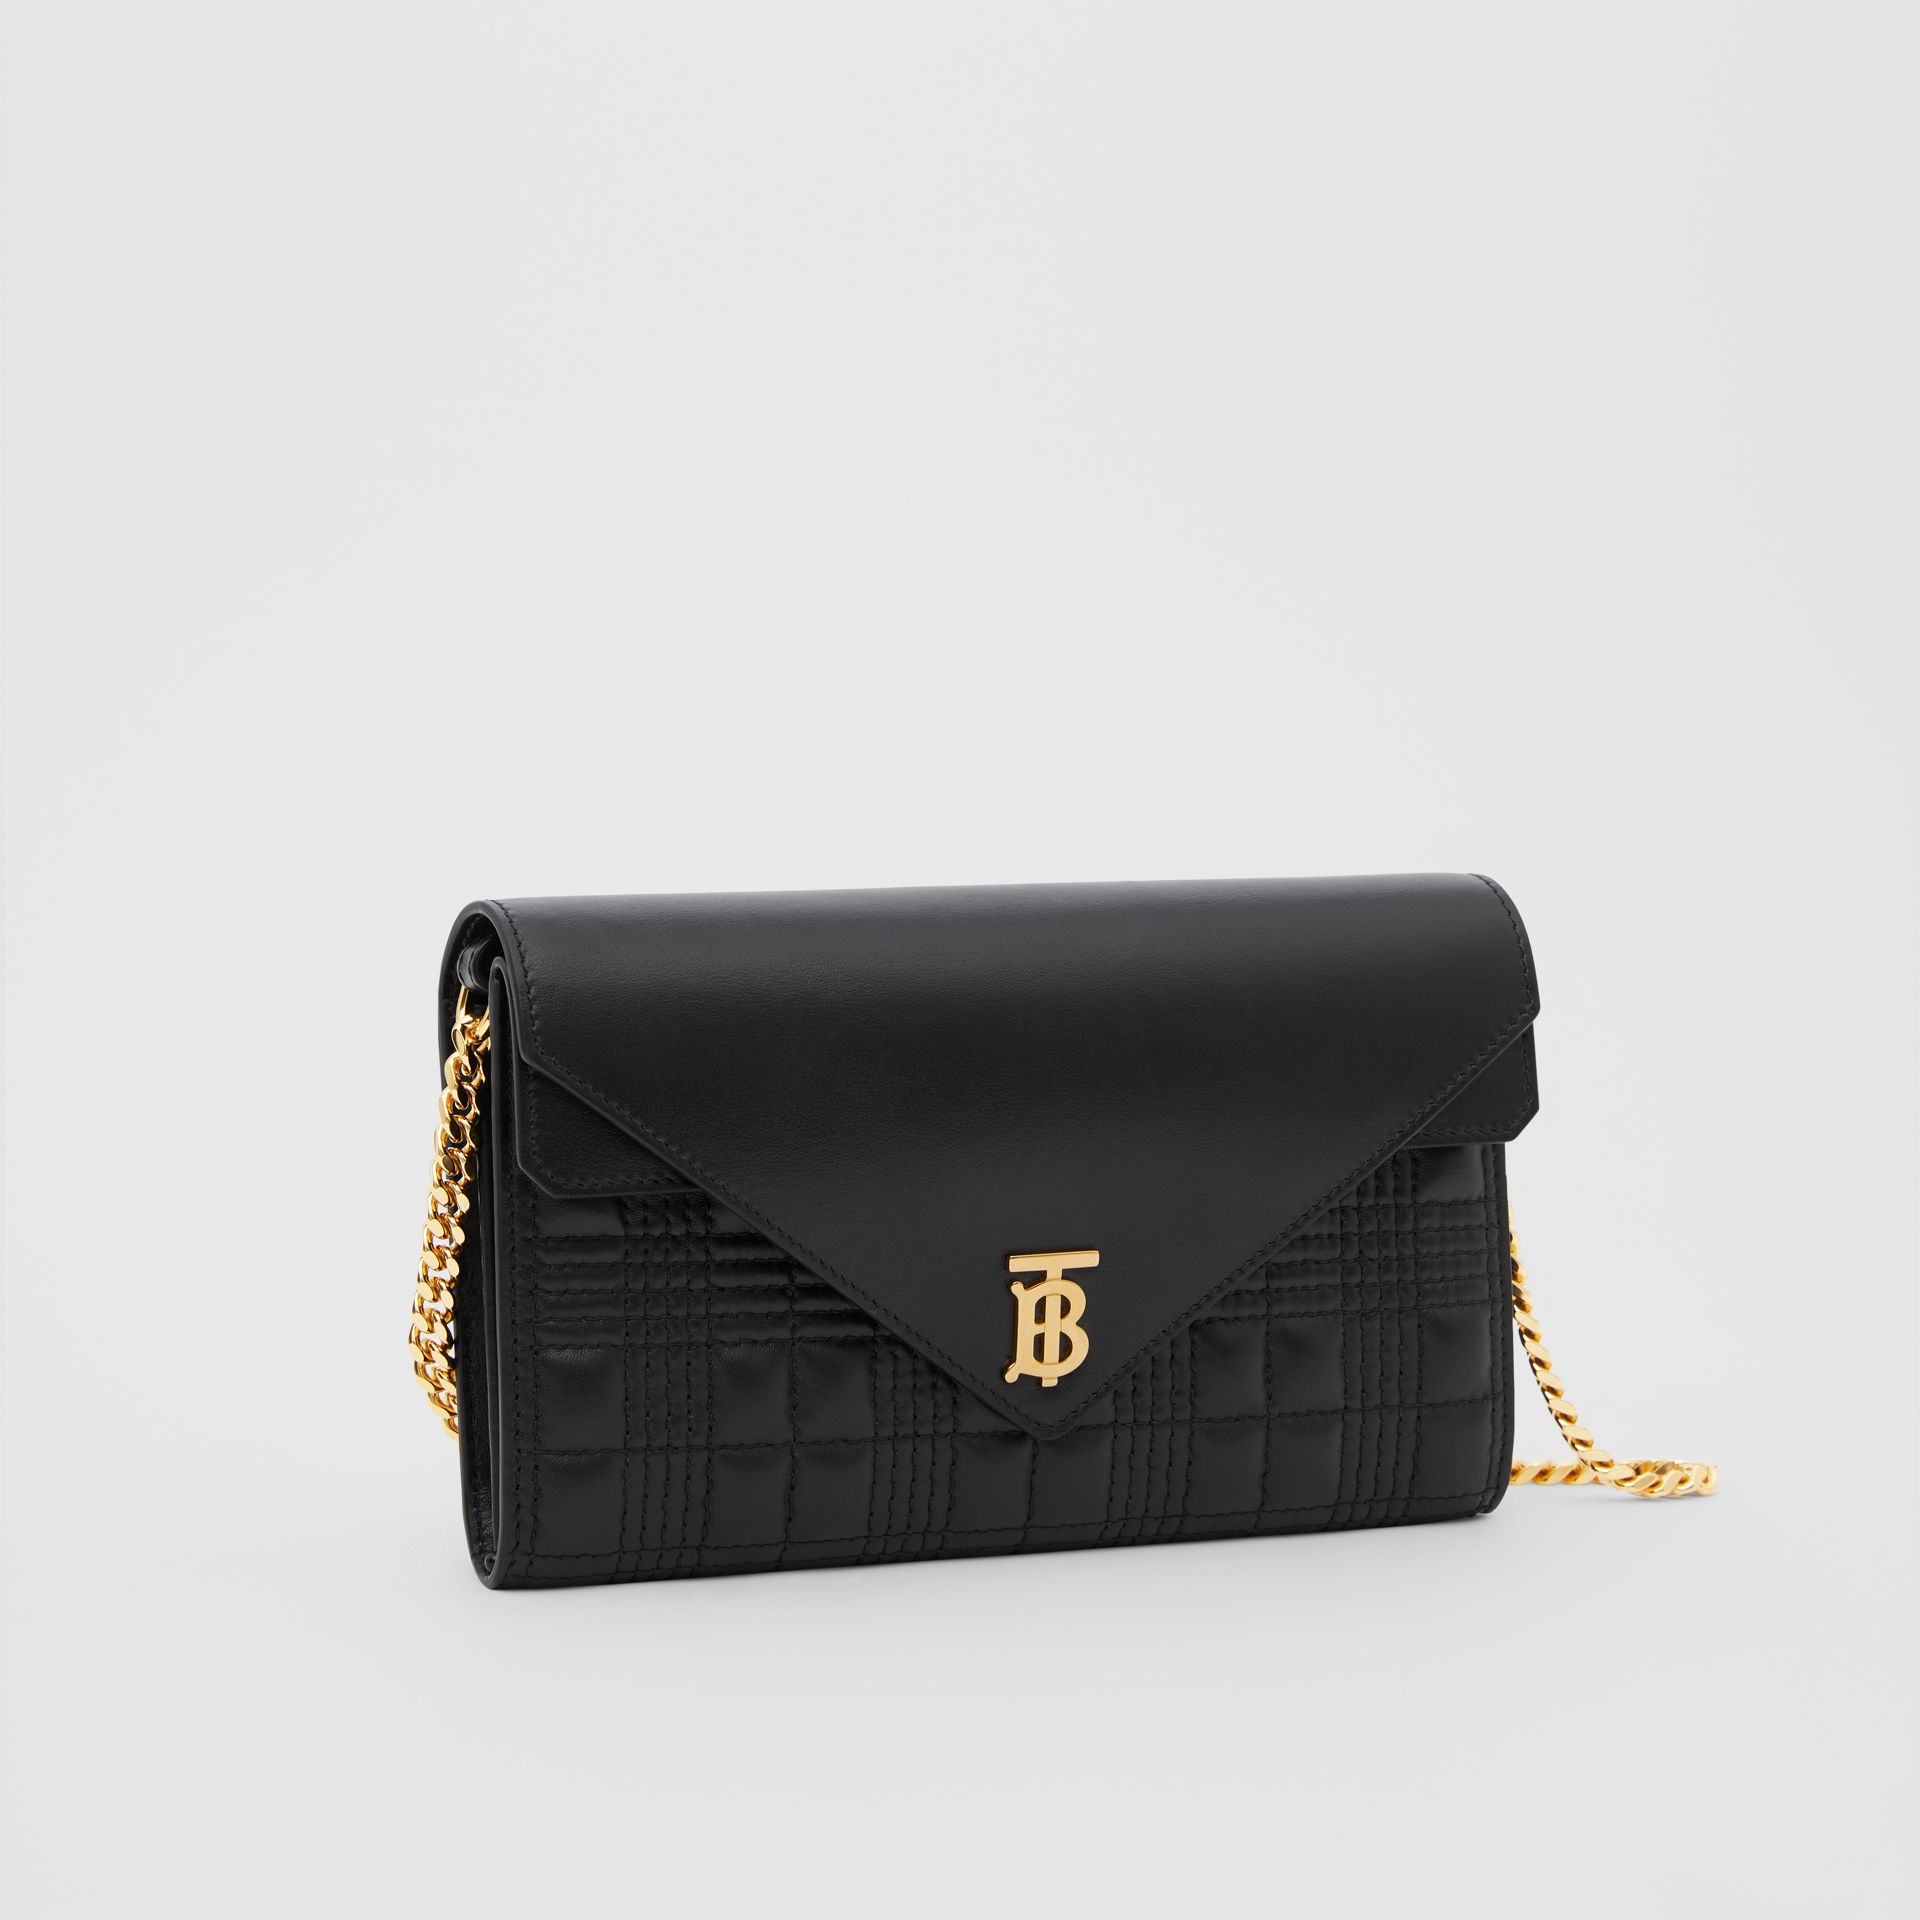 Quilted Lambskin Wallet with Detachable Chain Strap in Black - Women | Burberry United Kingdom - gallery image 6